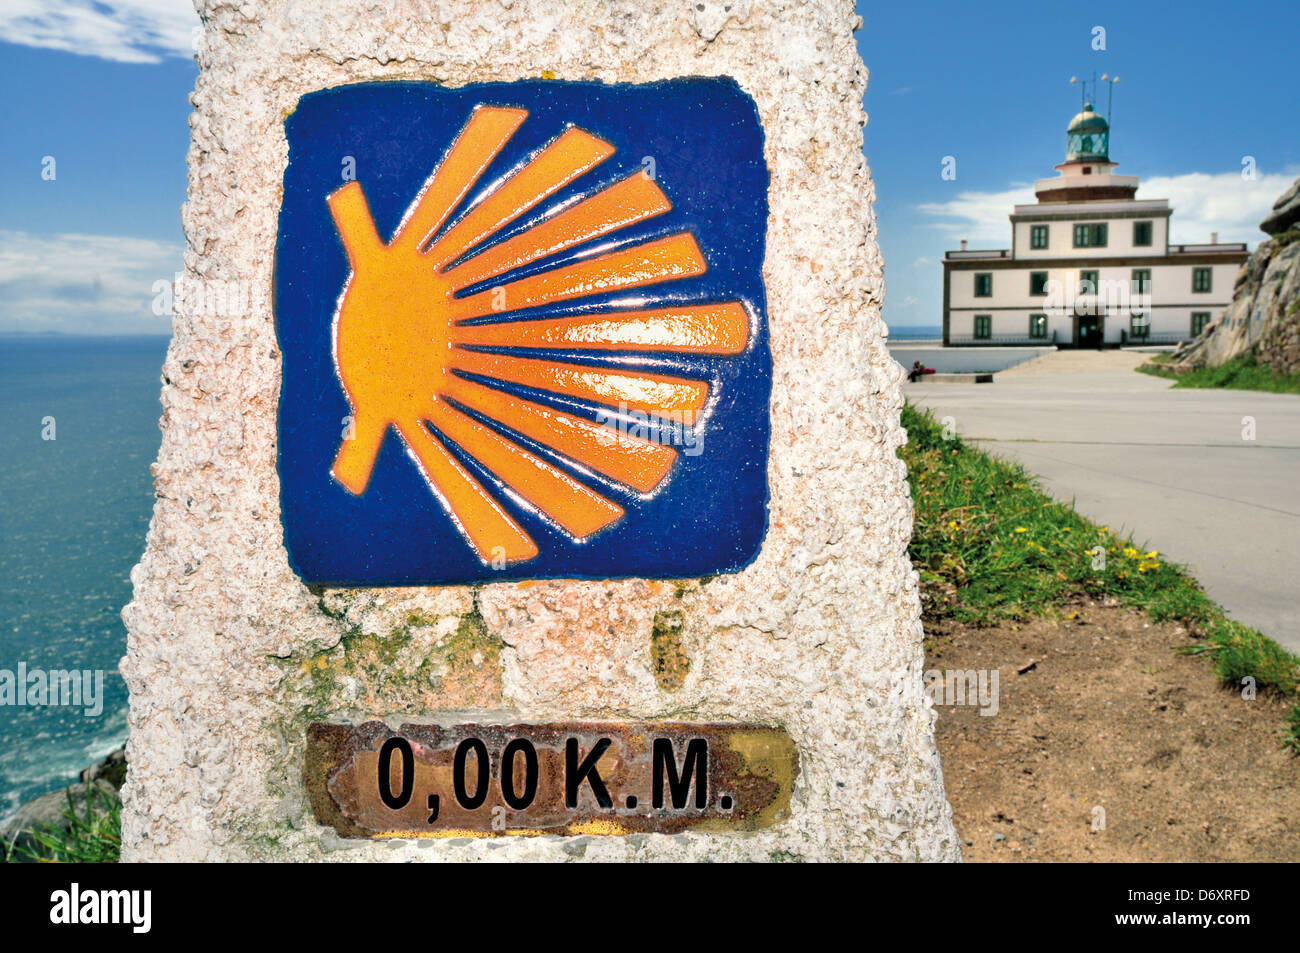 Spain, Galicia: Milestone of the Saint James Way at the end at Cape Fisterra - Stock Image